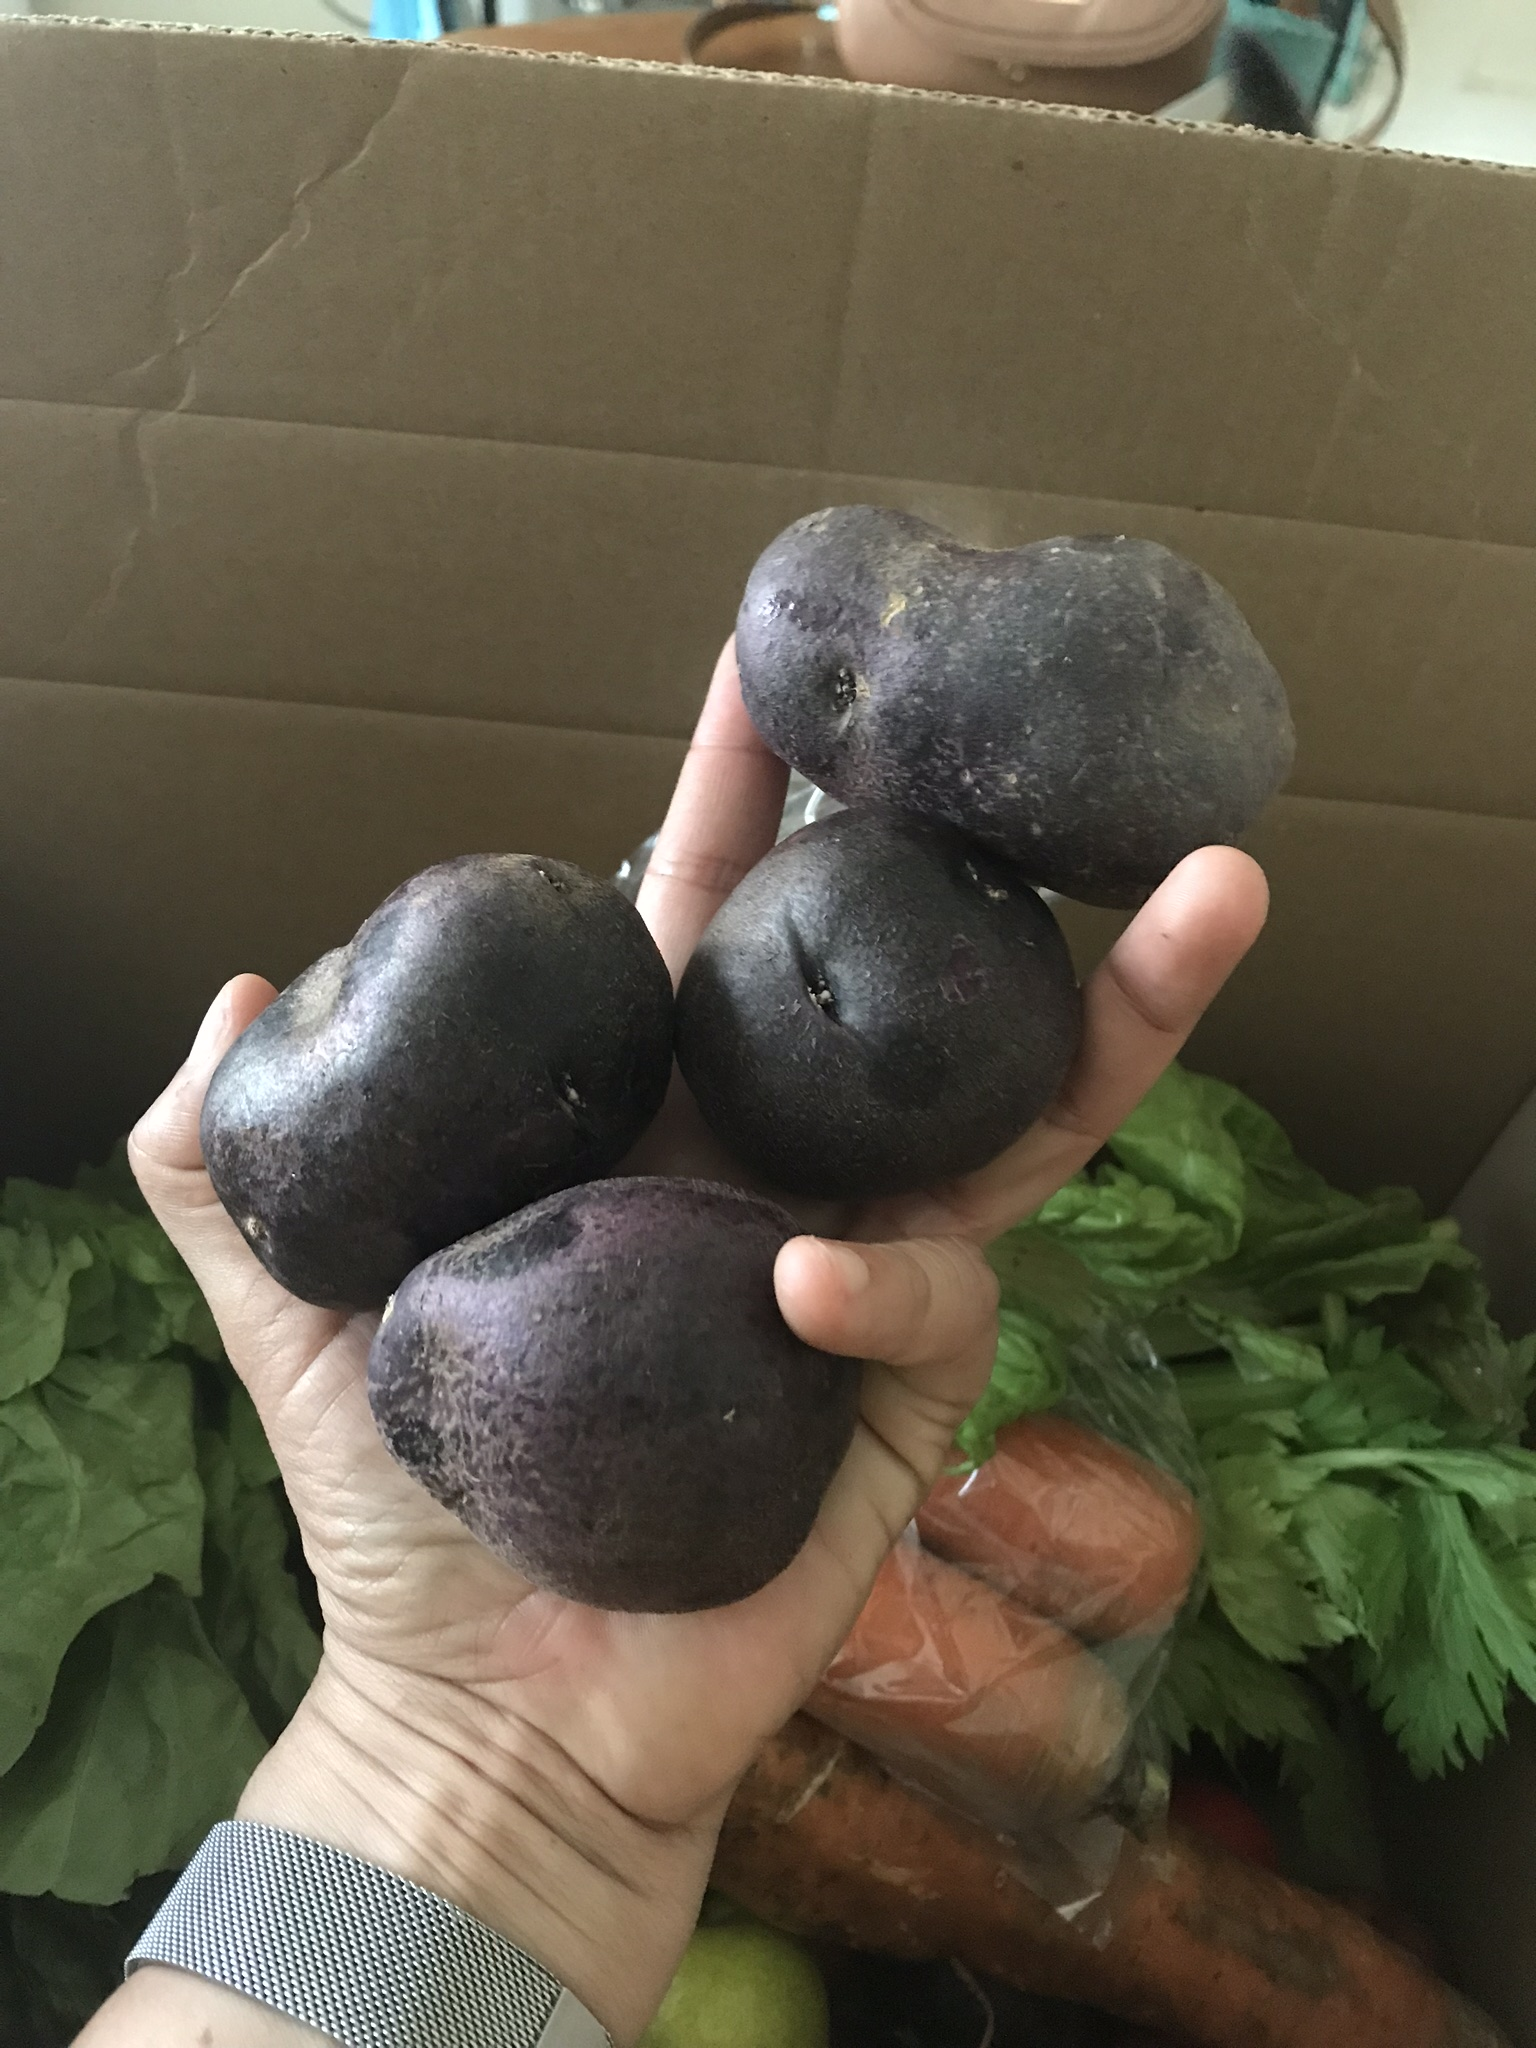 Imperfect Produce-4